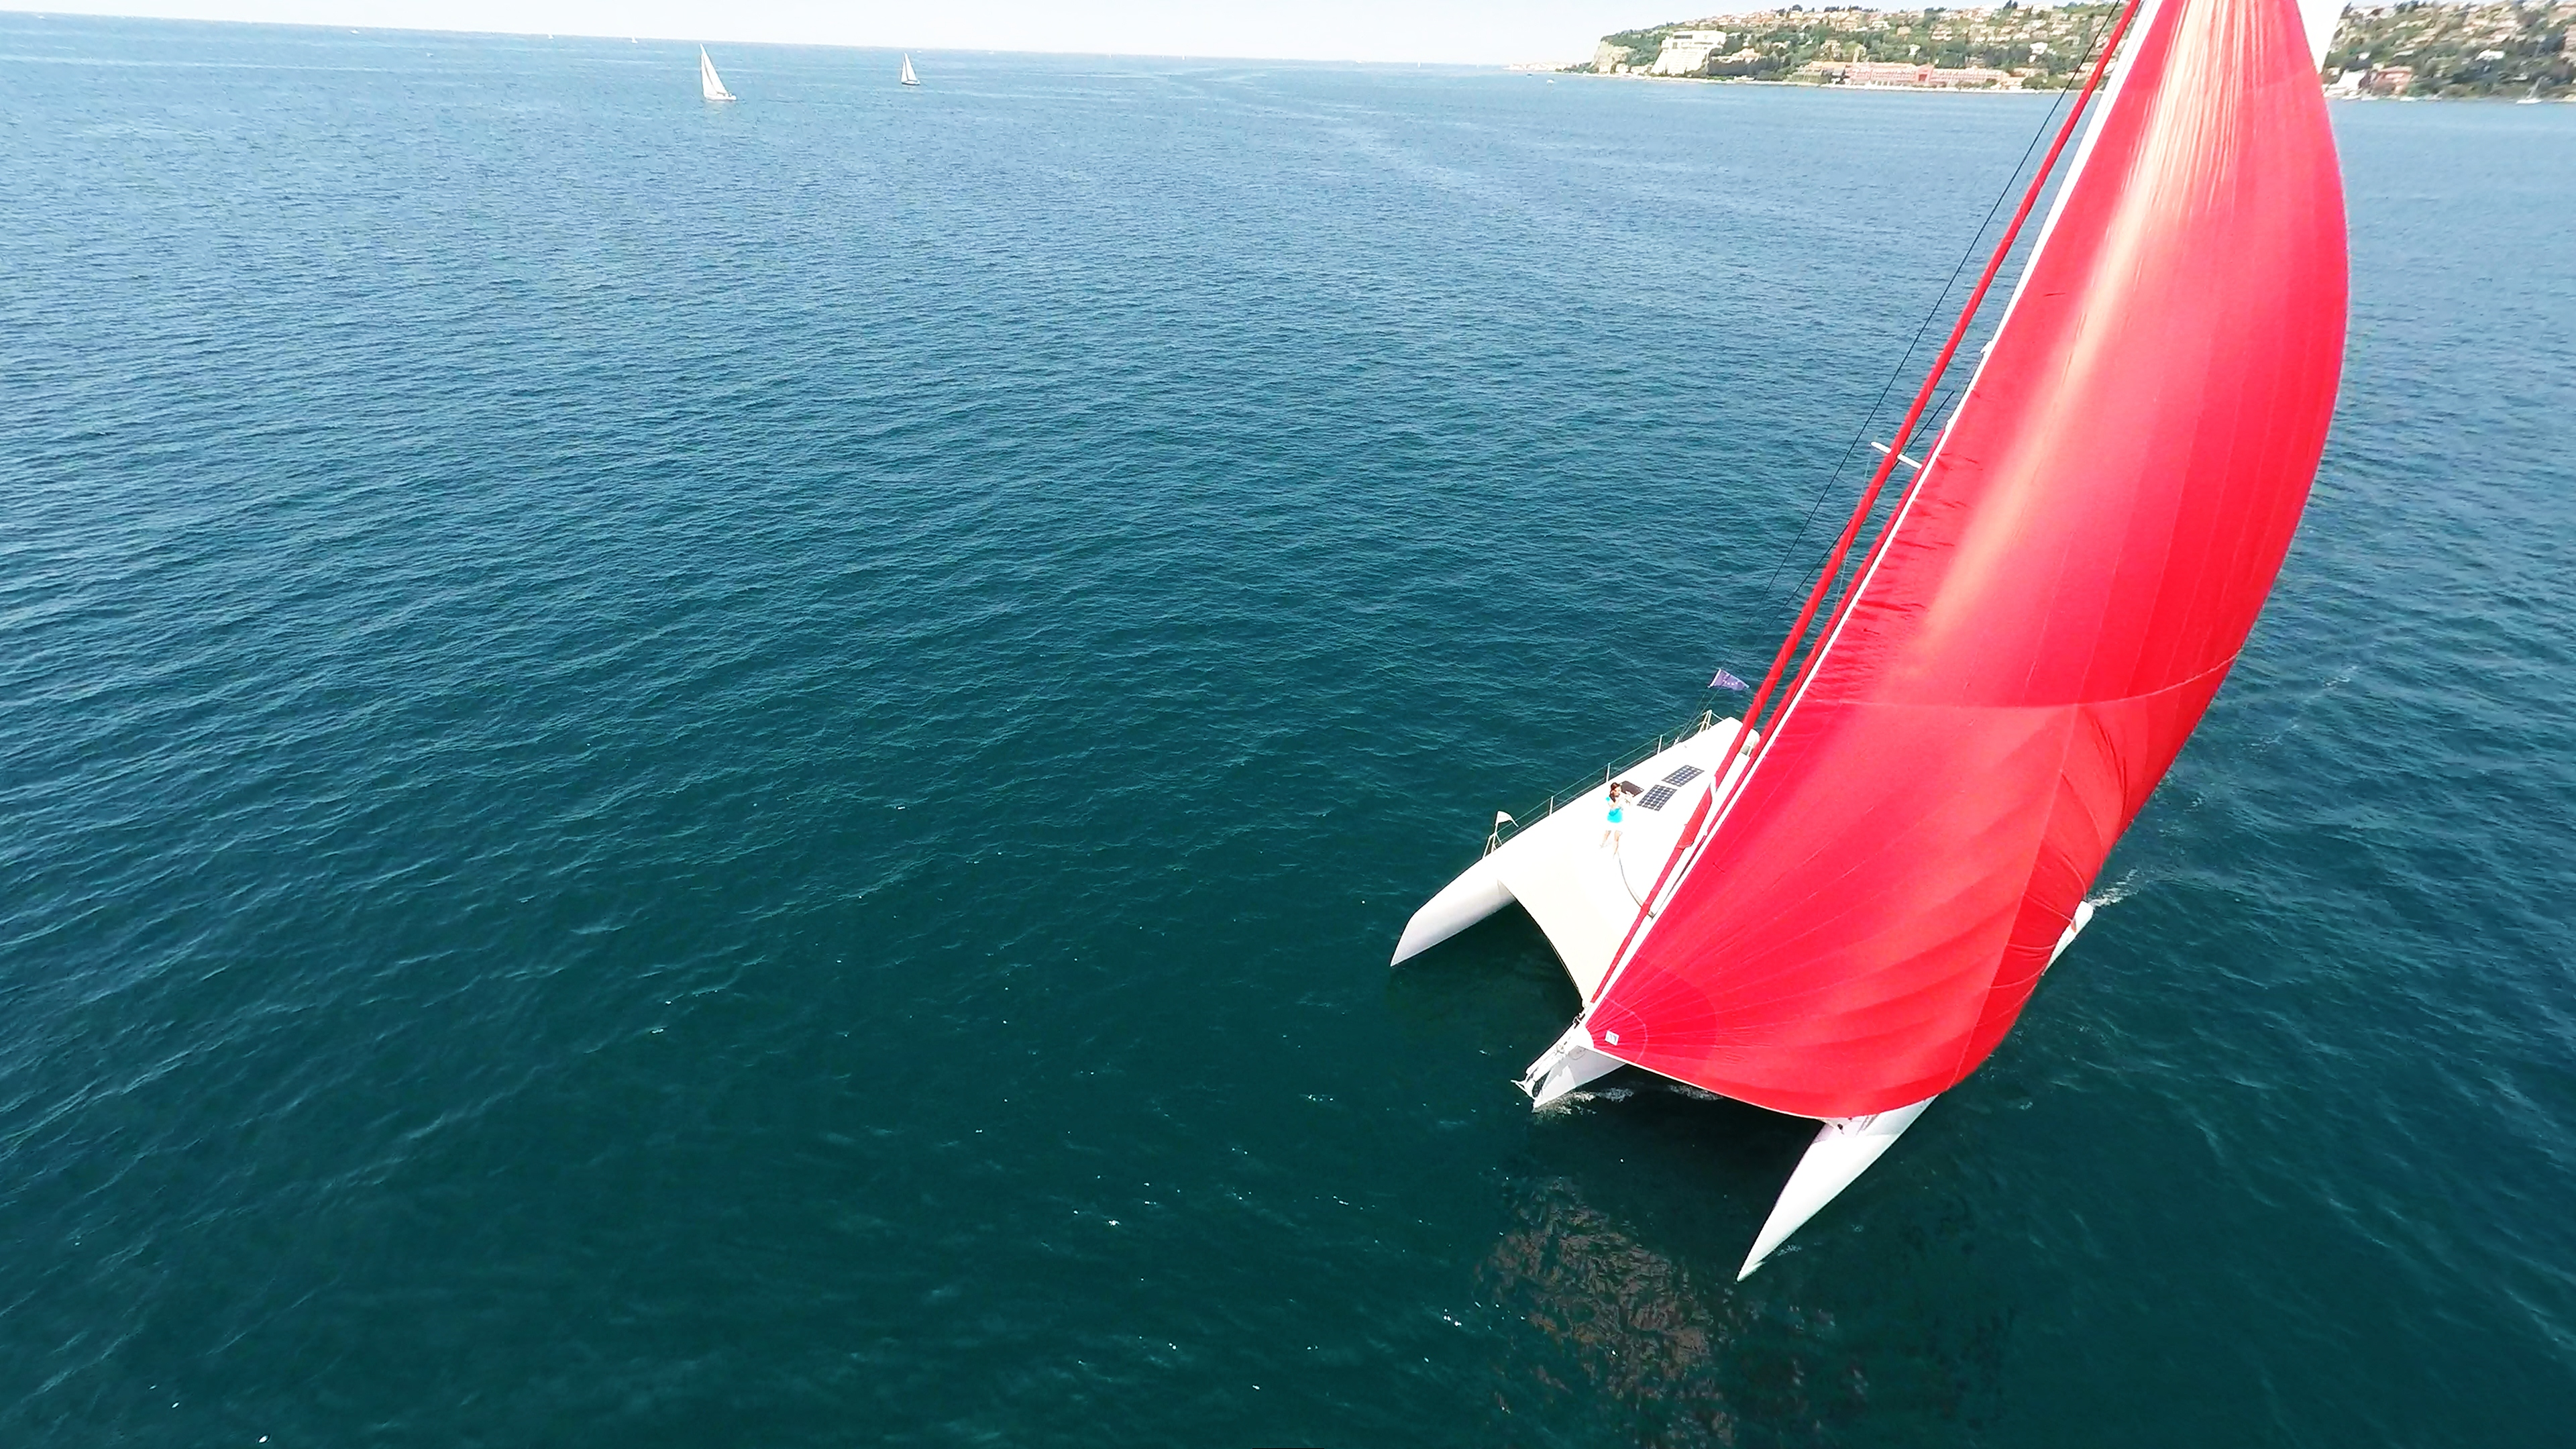 trimaran charter yacht sailing with gennaker on mast